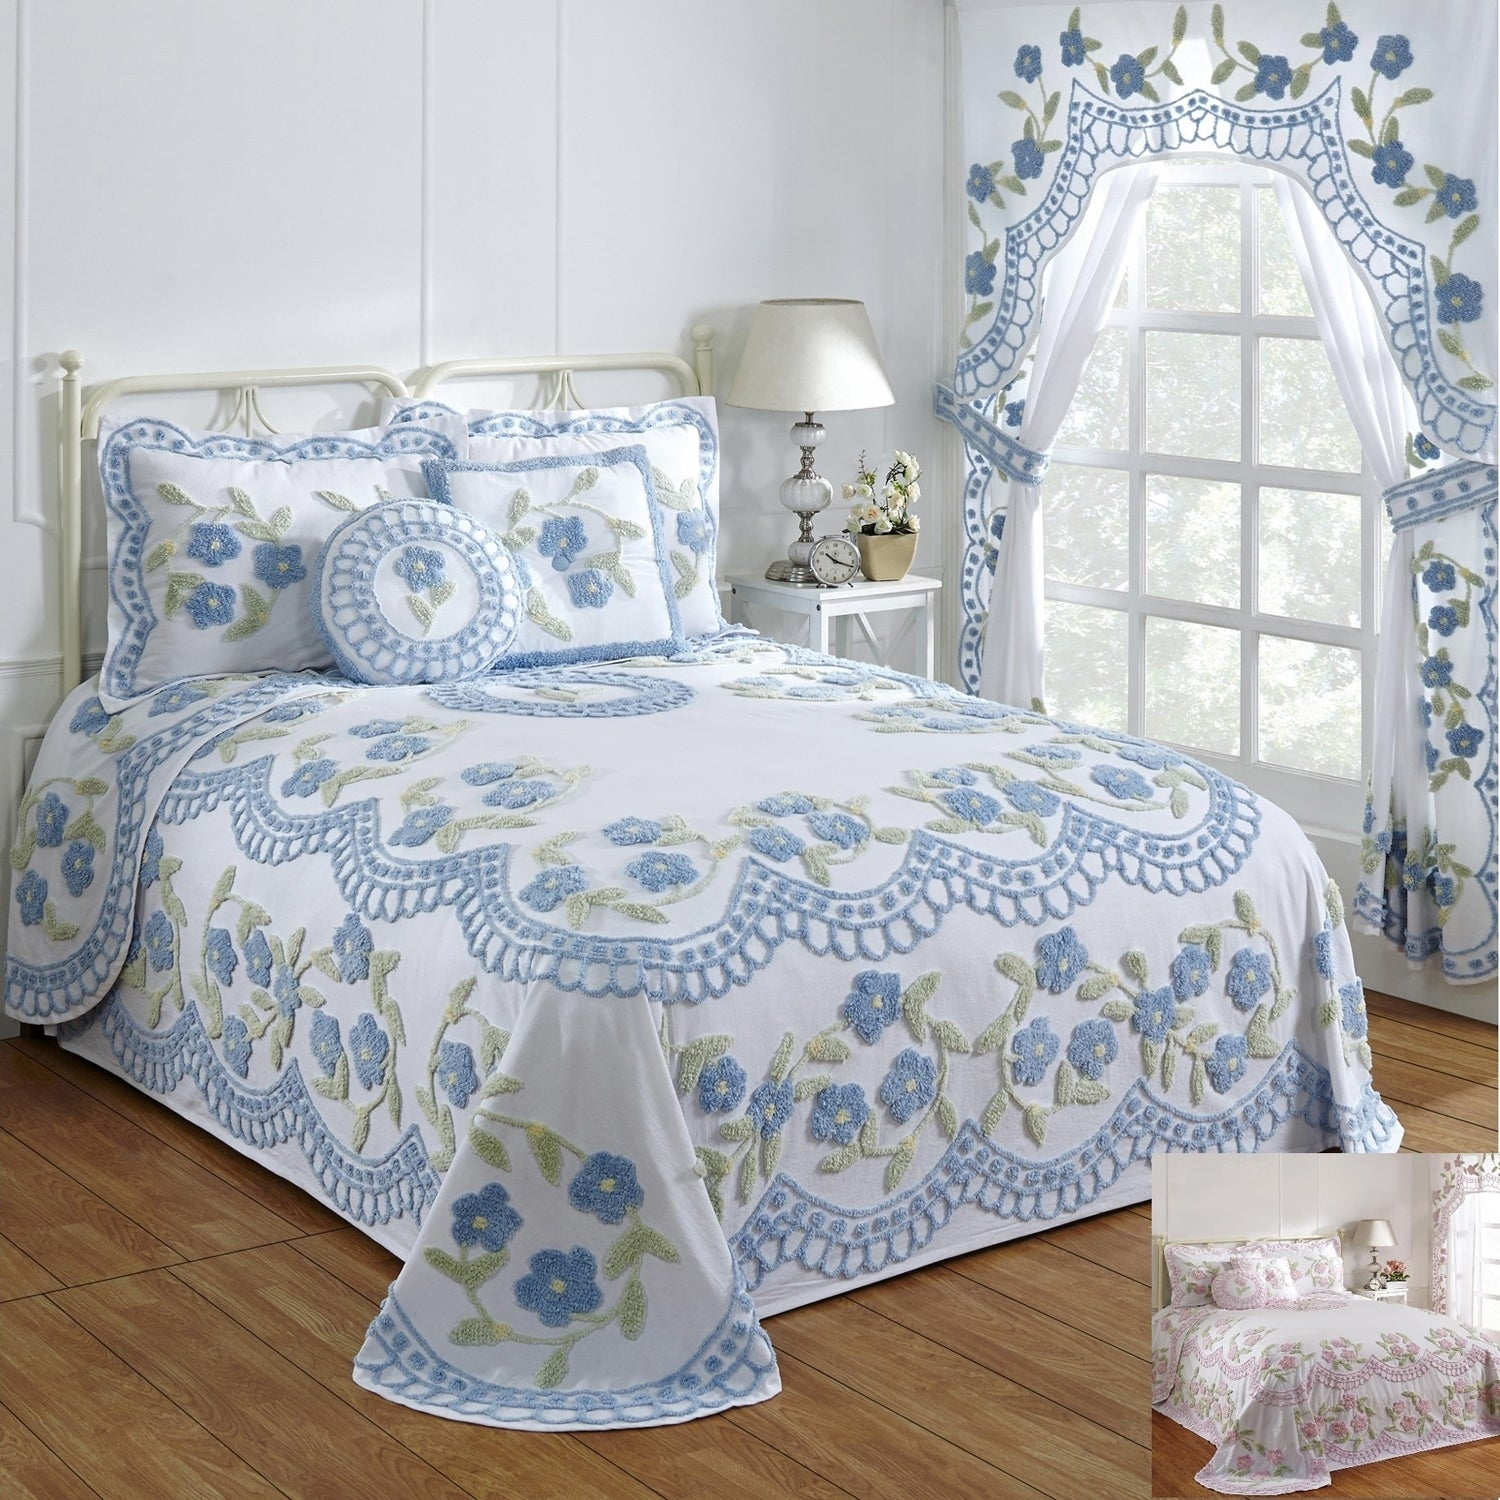 Chenille Bedspreads.Chenille Bedspreads Find Great Bedding Deals Shopping At Overstock